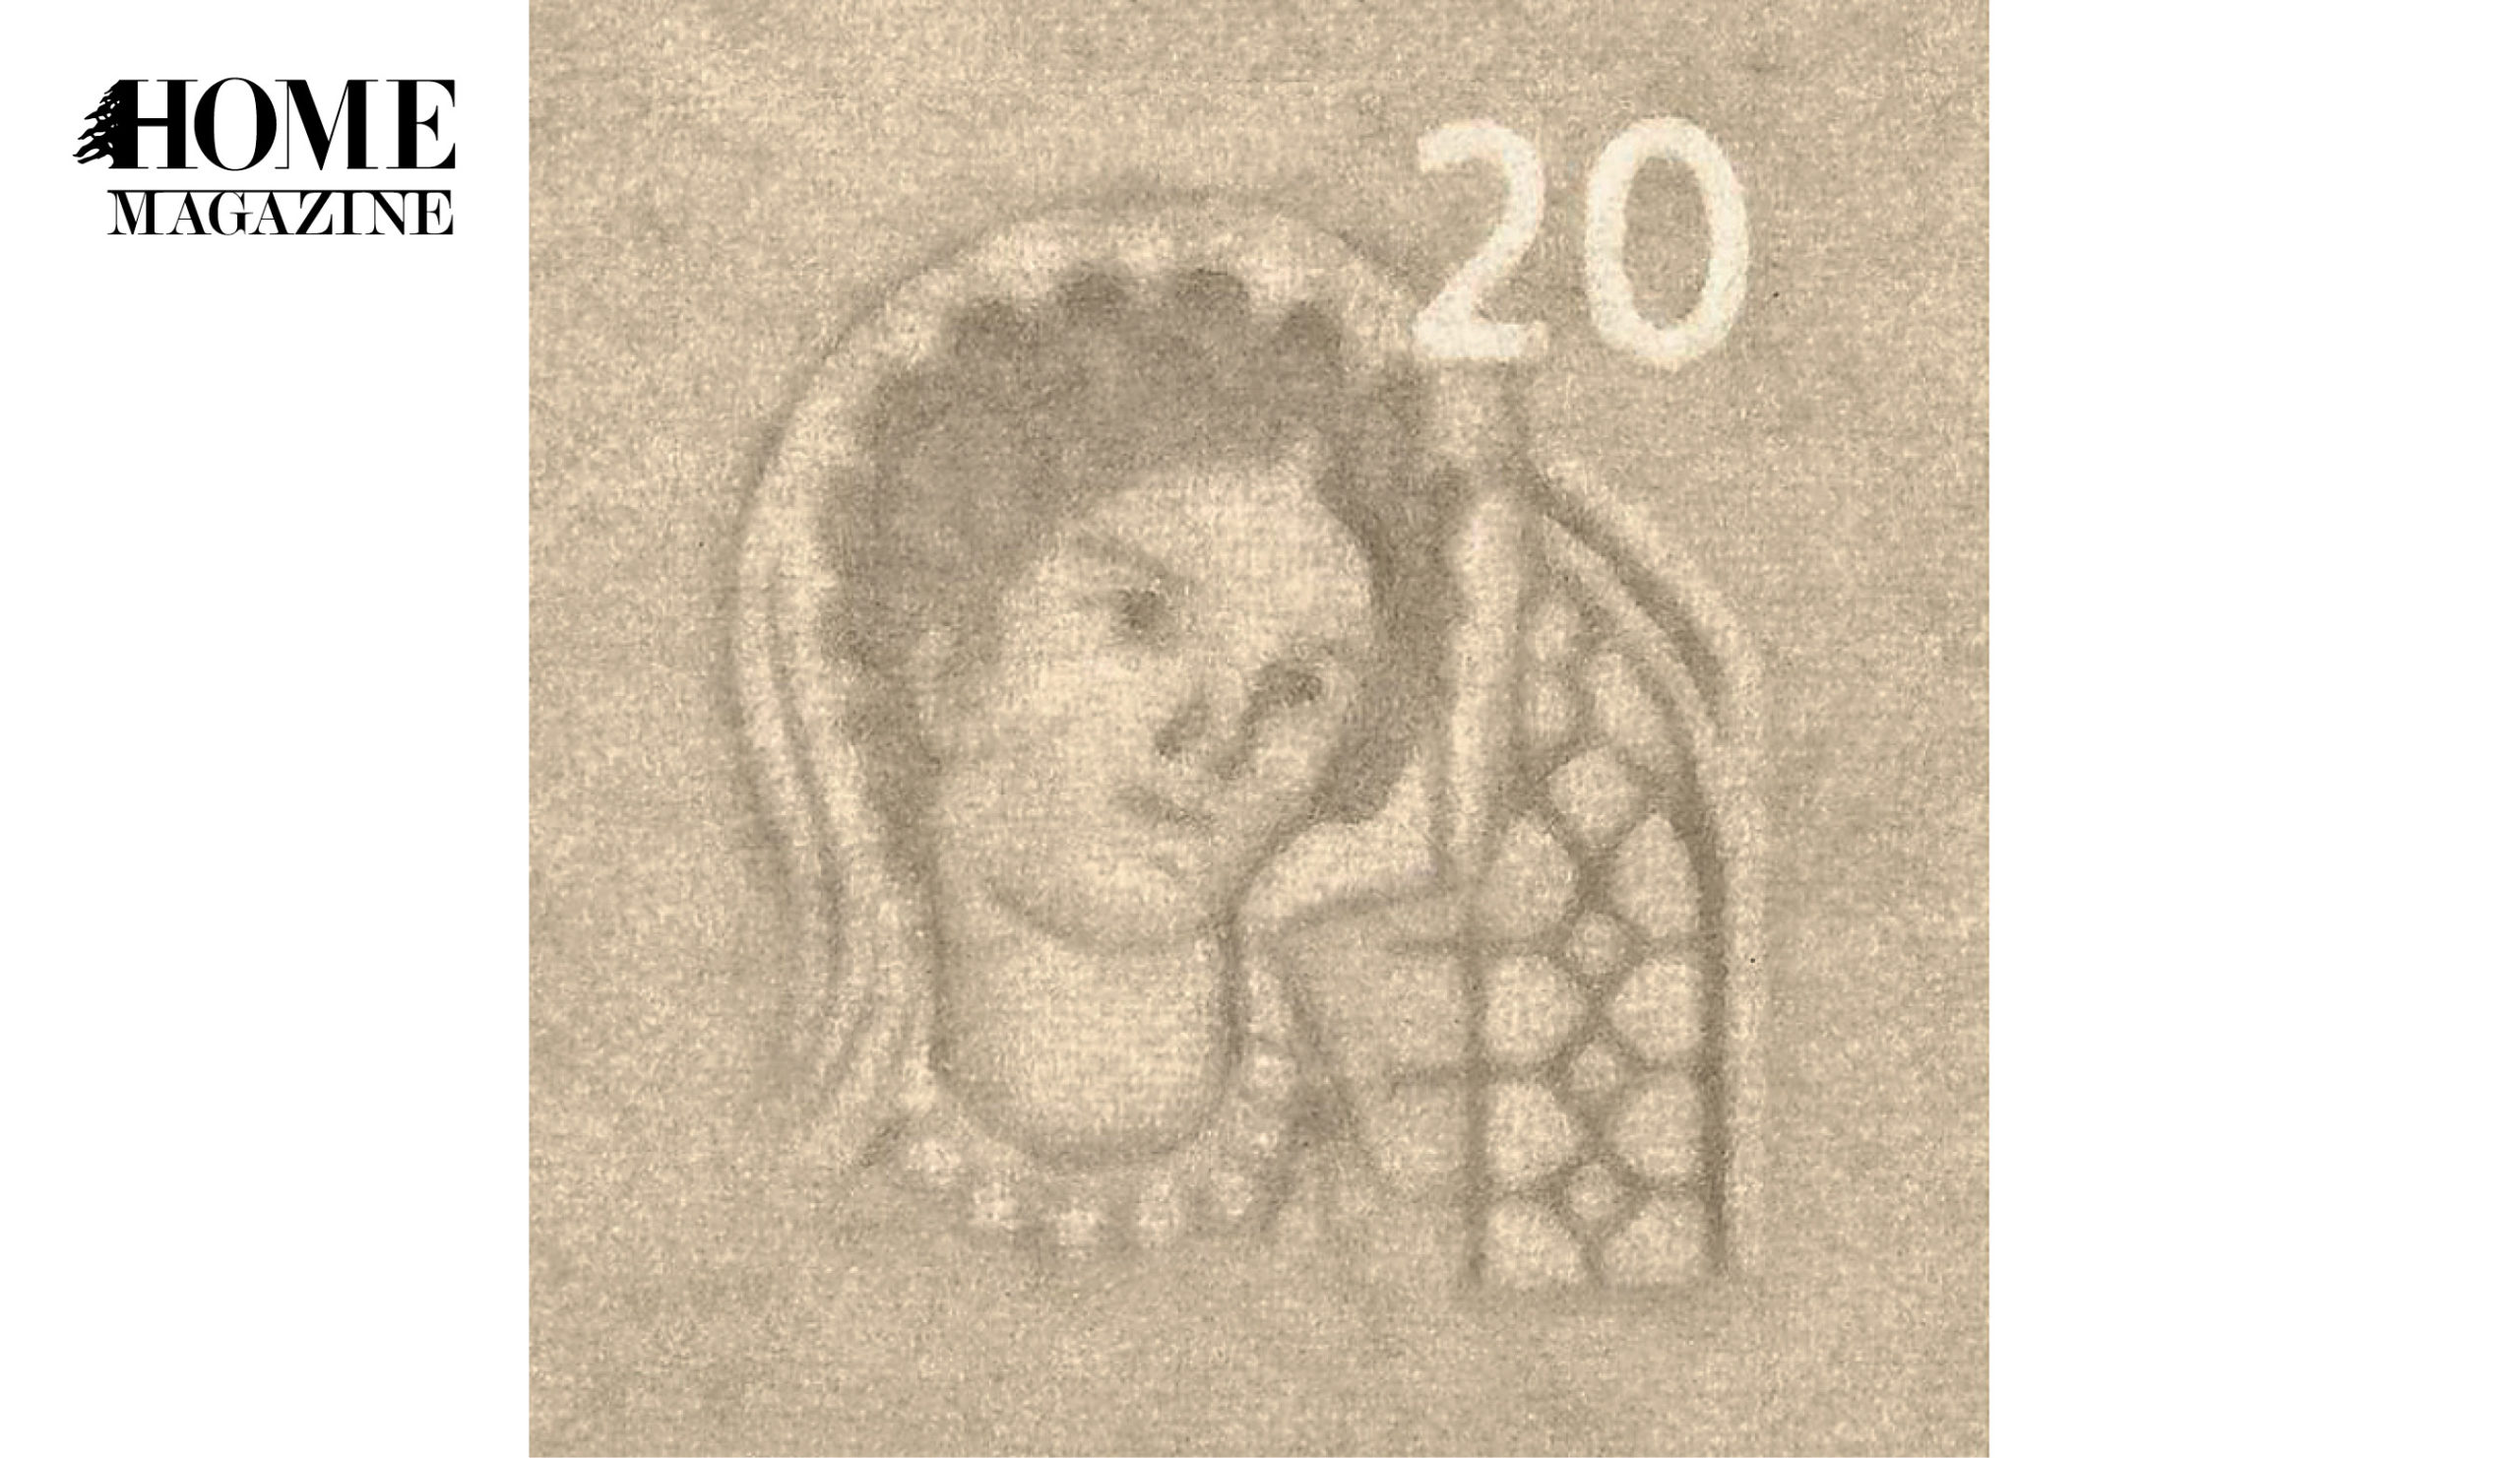 Woman portrait on a banknote